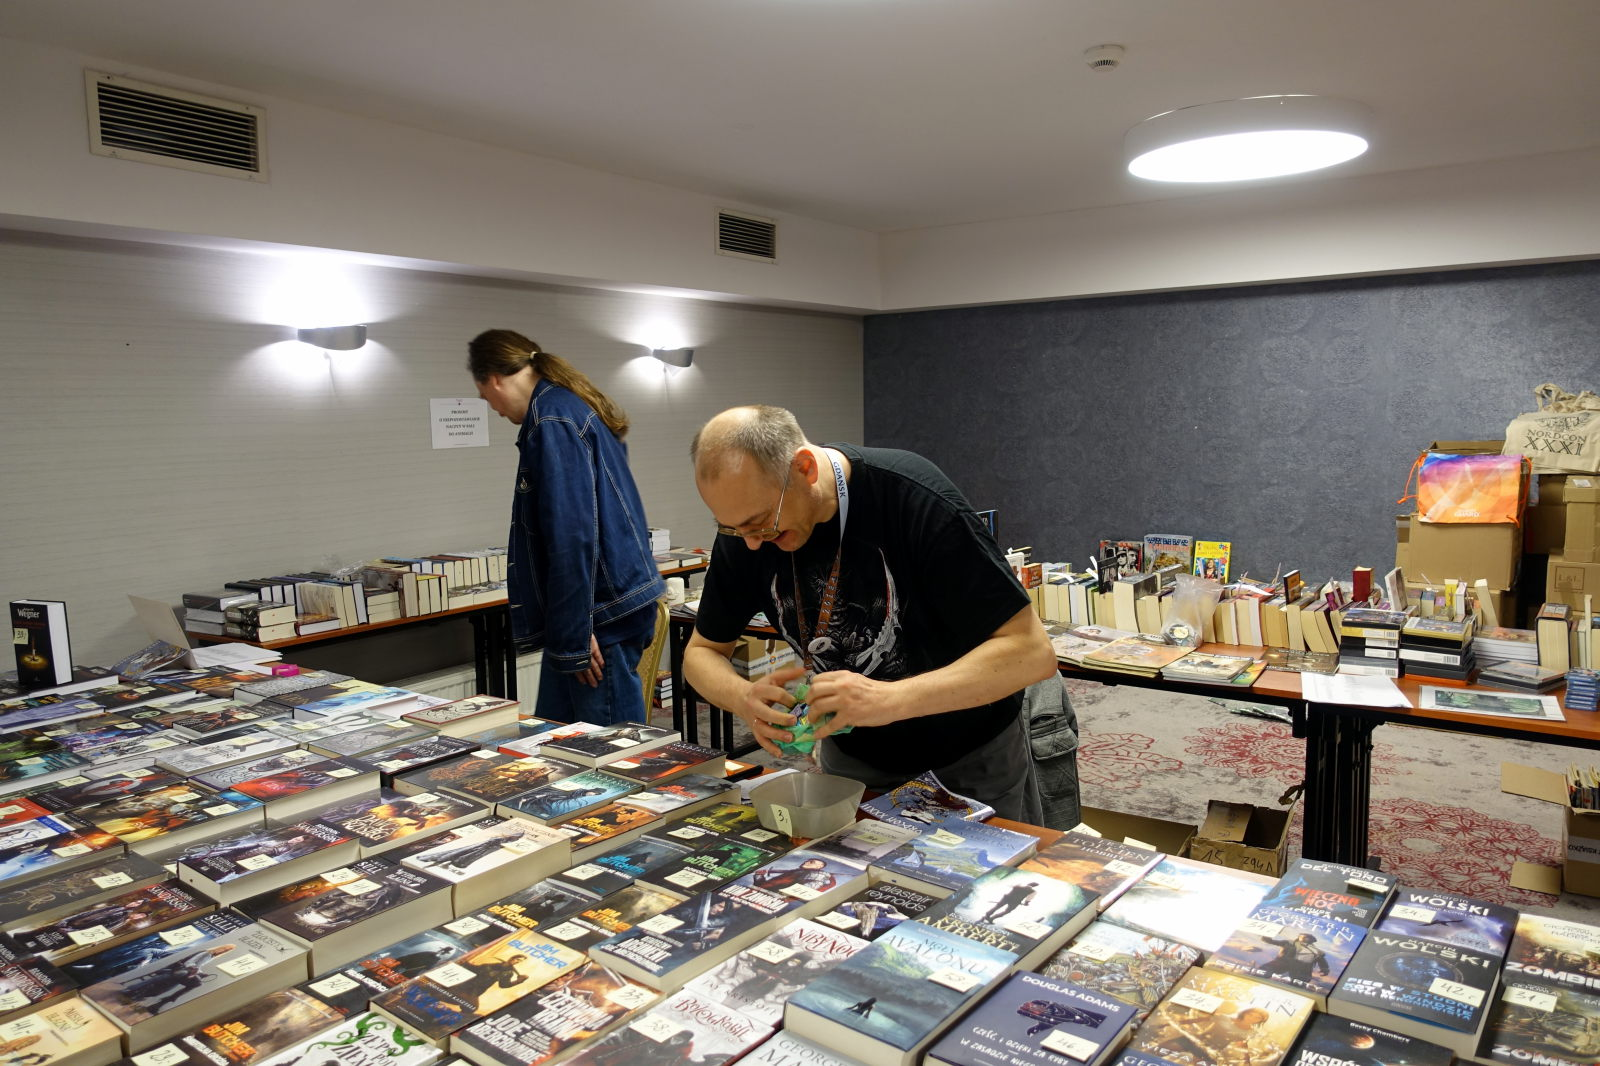 Big flat surface is covered with books. Behind it there is a man tearing the foil bag. In the background there is another man standing and there are two tables with books on them.